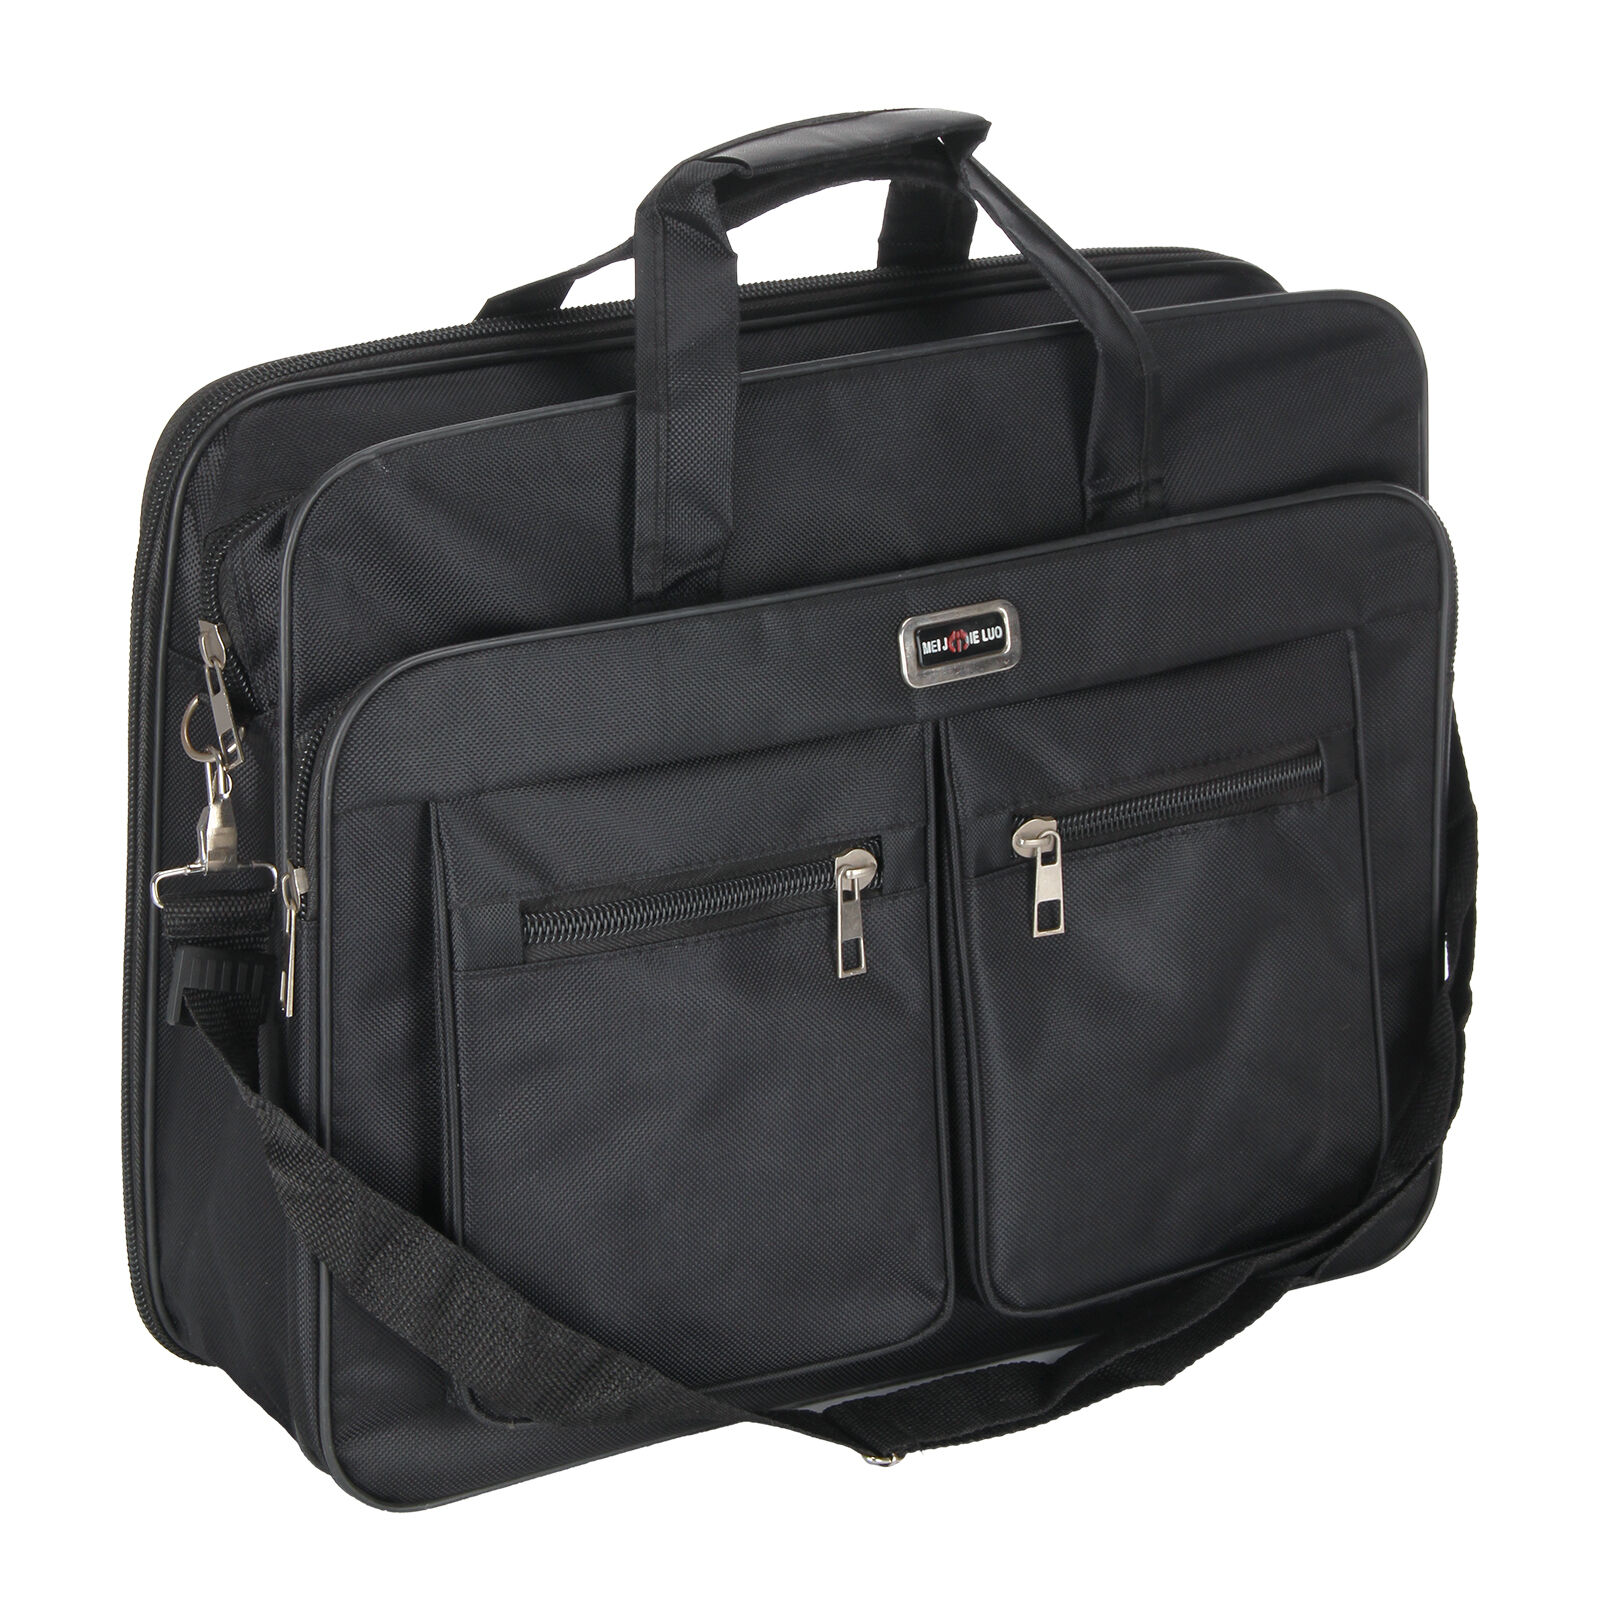 Business Laptop Case Bag Laptops Up To 17 Inch Notebook Computer Lightweight UK U2022 U00a38.99 ...